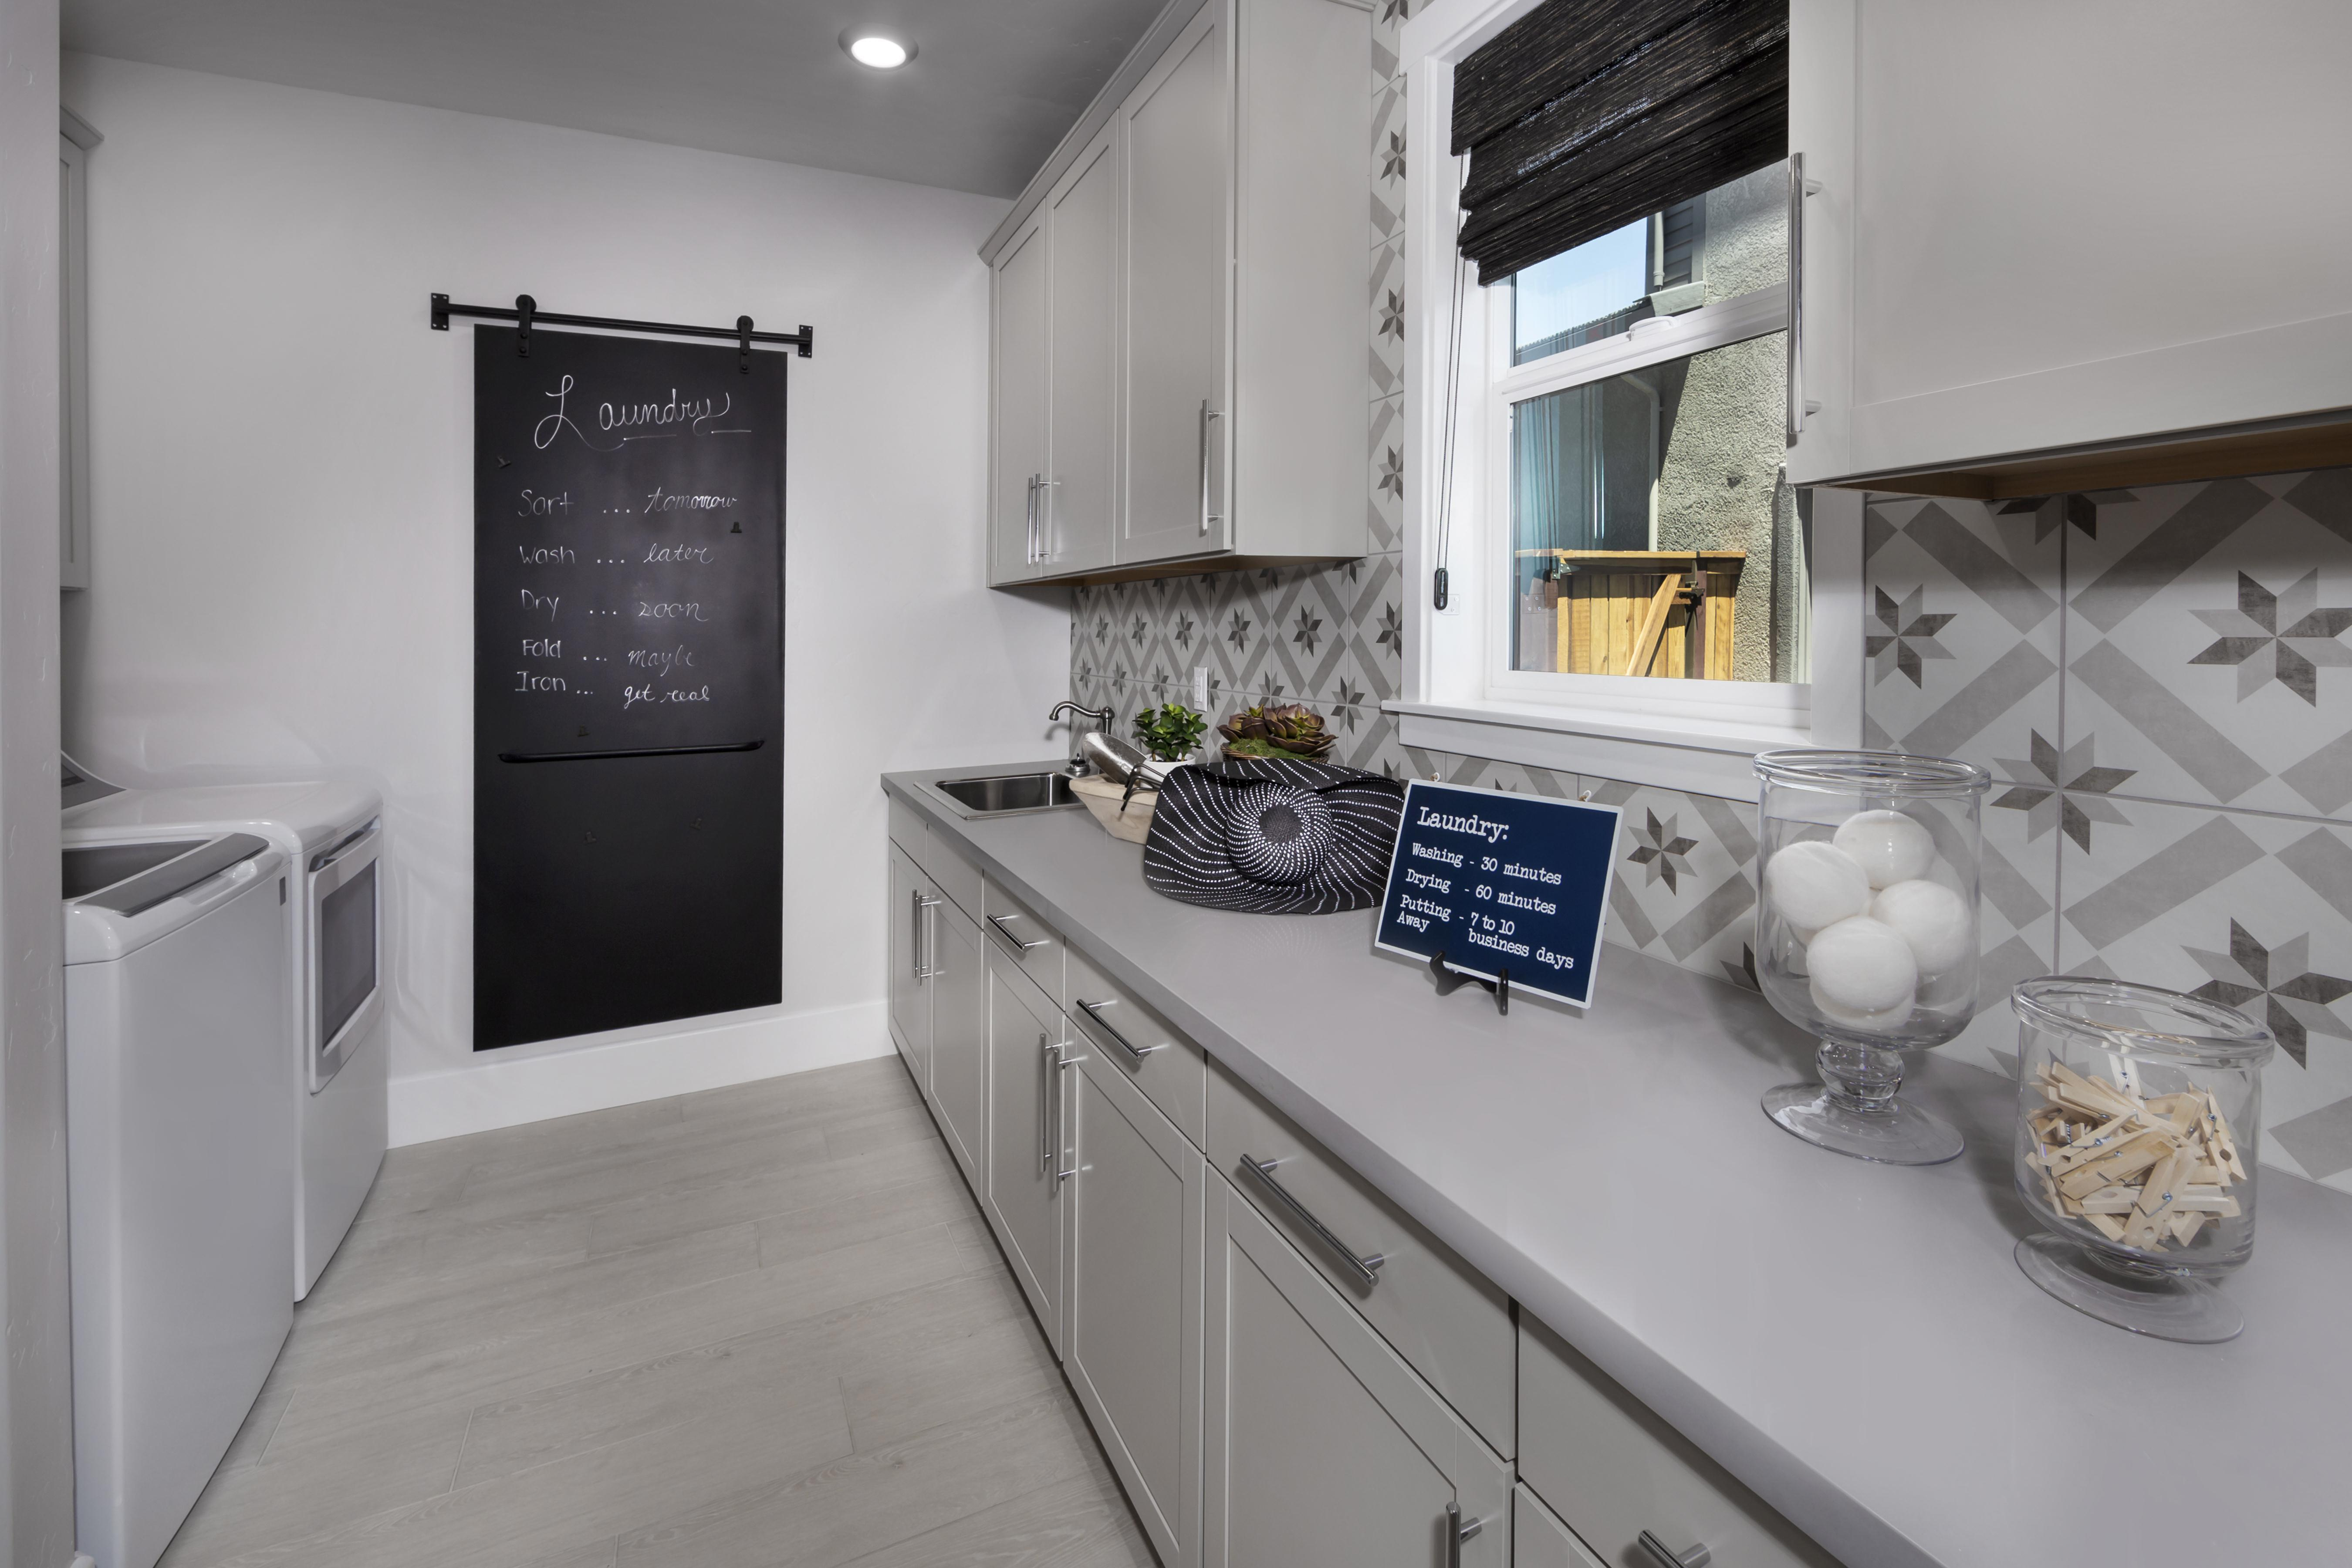 Kitchen featured in the Residence One-X By Tim Lewis Communities in Sacramento, CA